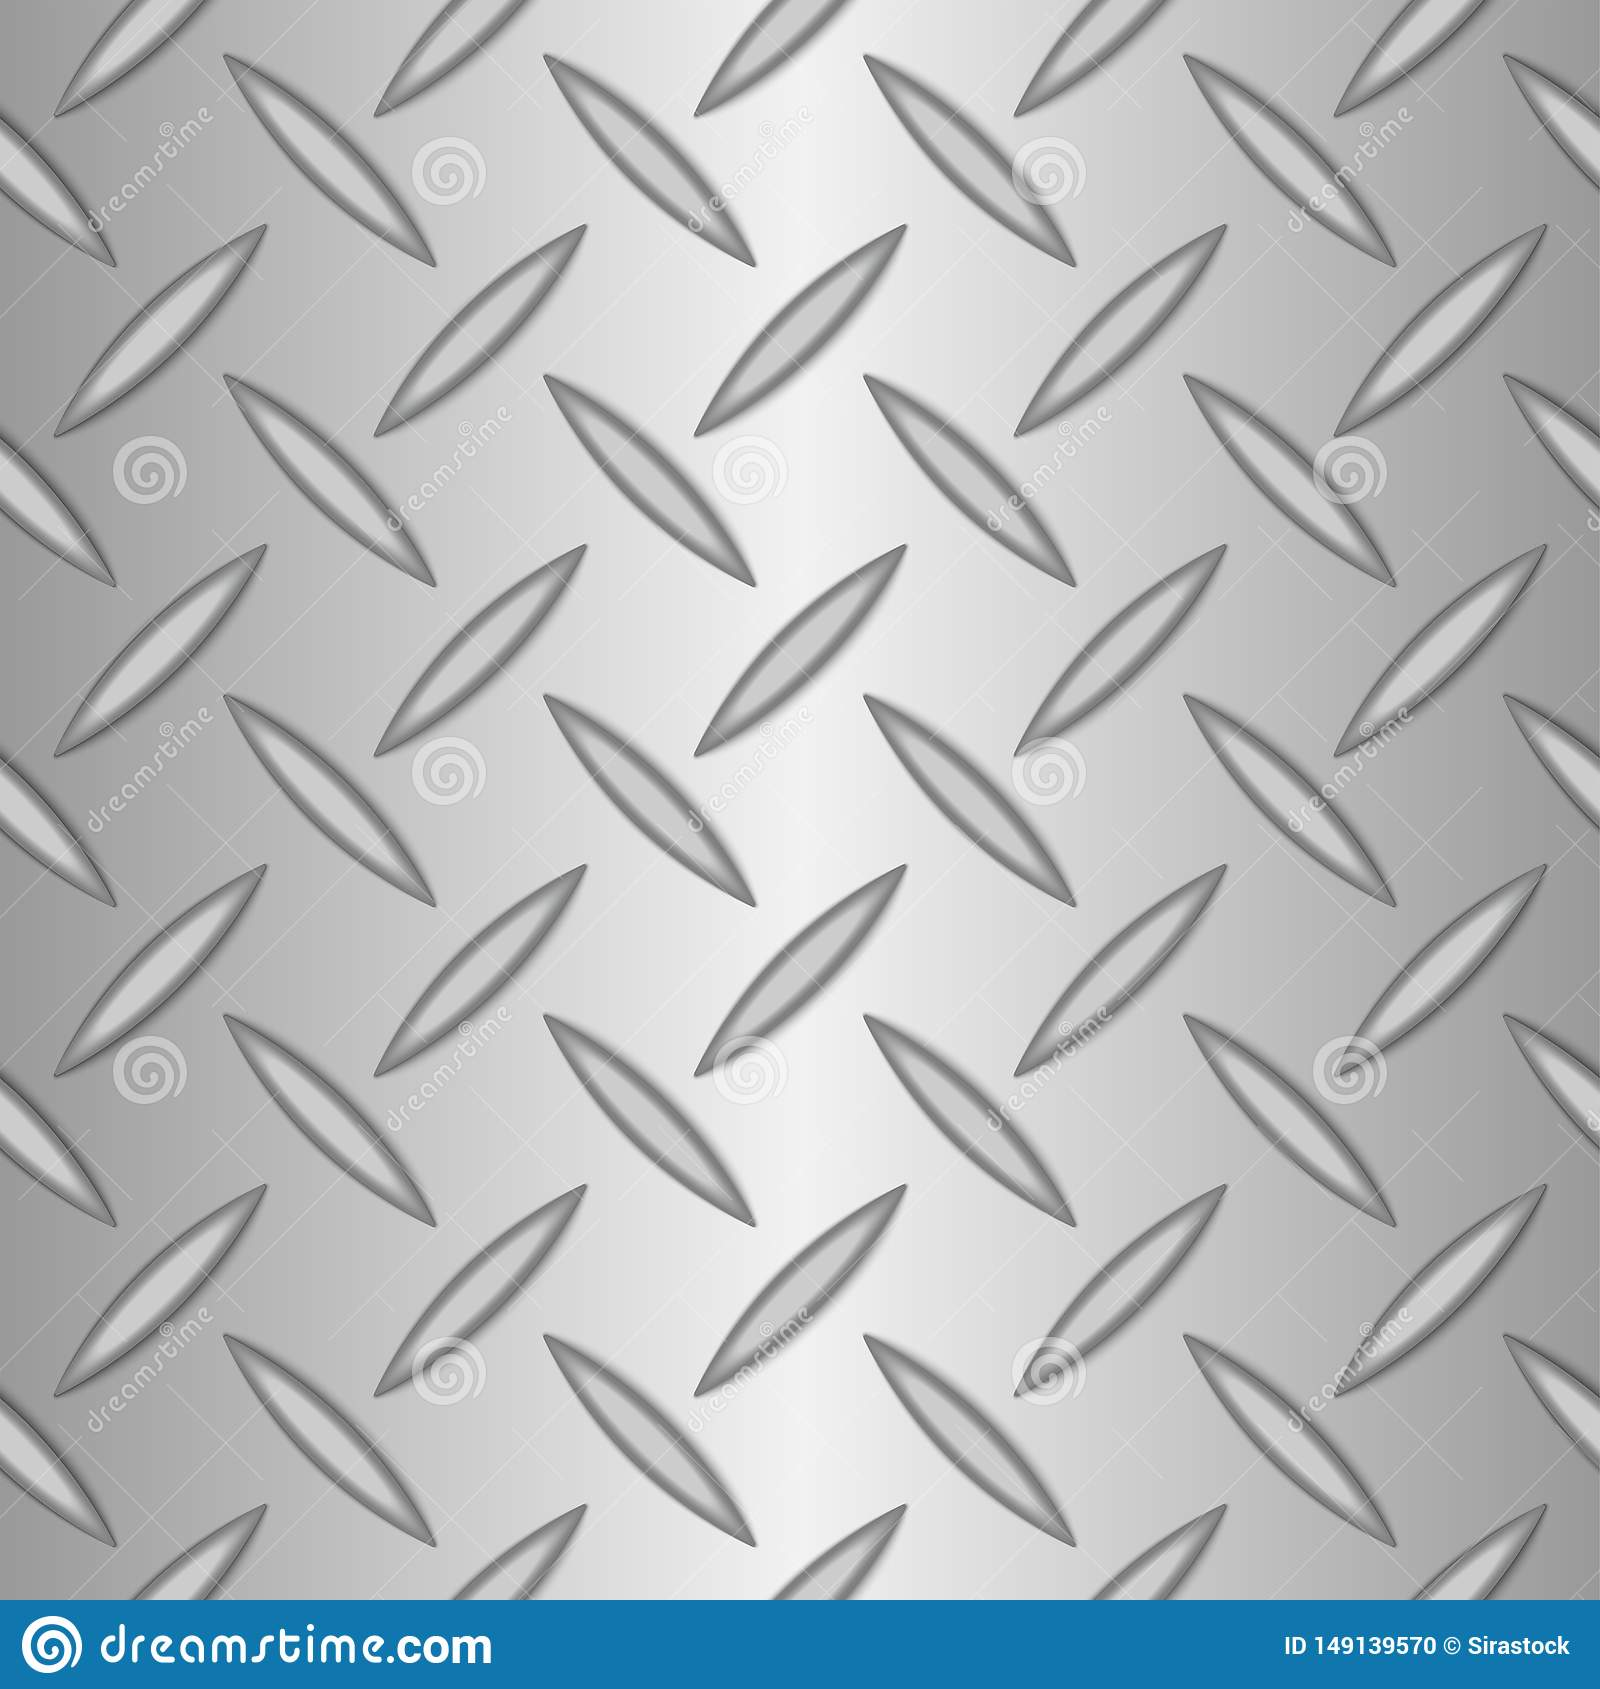 Silver Metal Background Of Seamless Diamond Plate Stock Vector